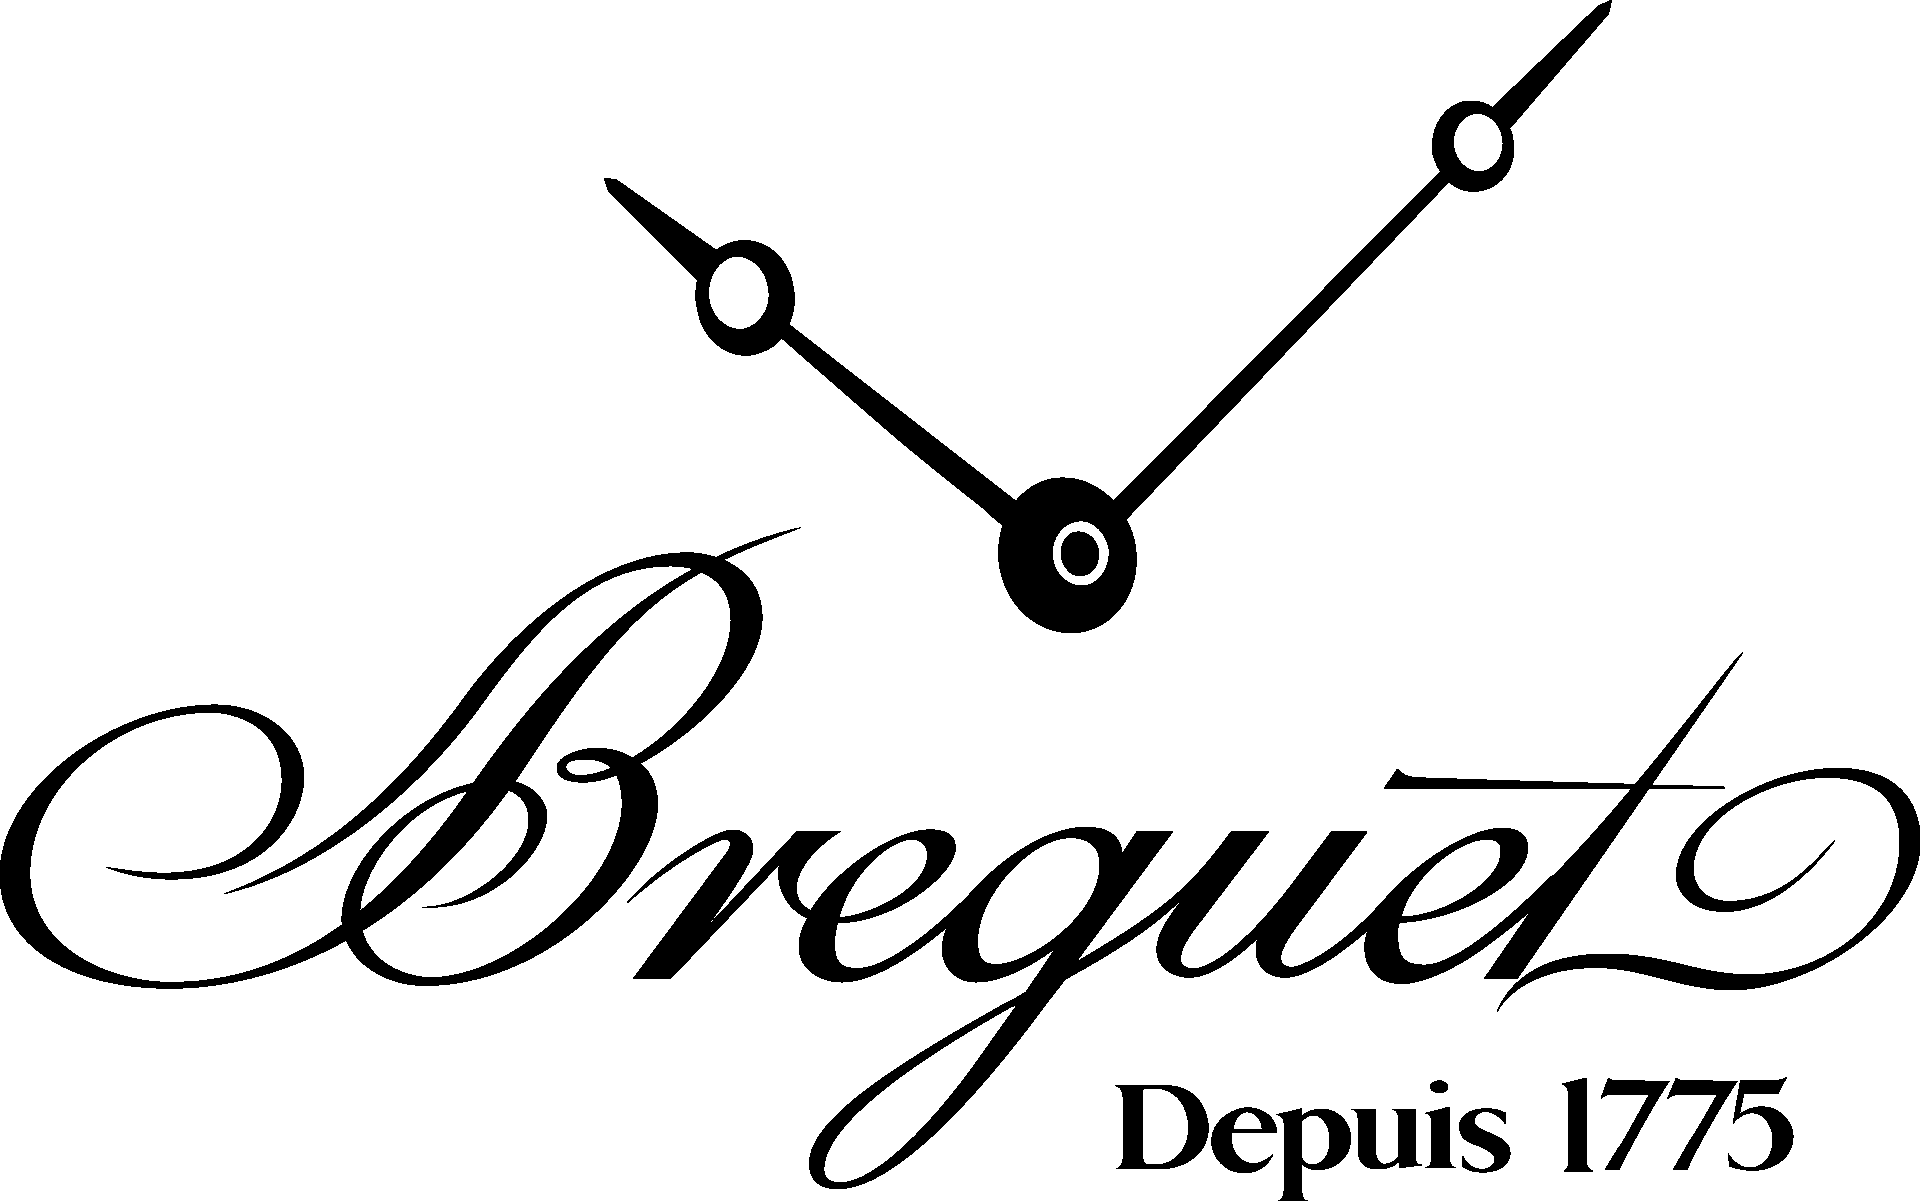 Breguet Logo Vector Icon Template Clipart Free Download